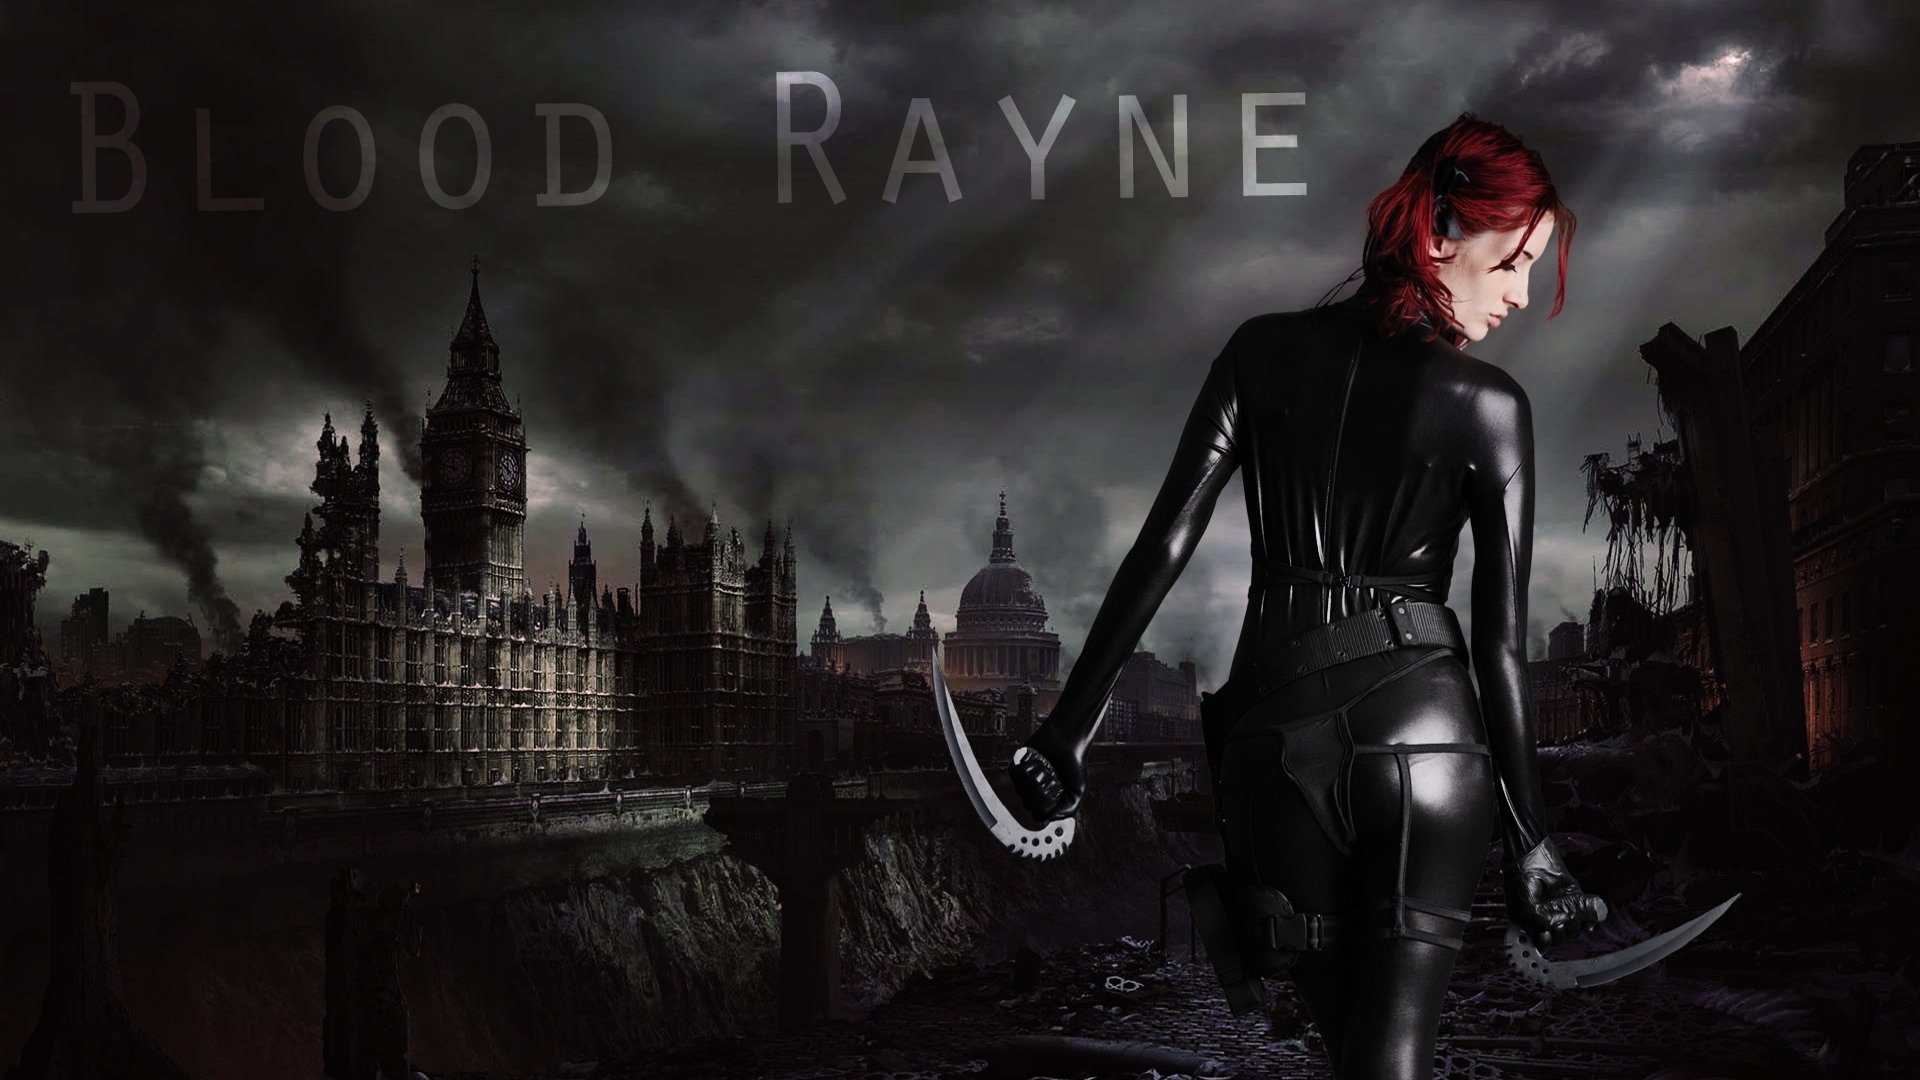 Celebrity - Susan Coffey  Cute Photography Eye Hair Movie Bloodrayne Weapon Latex Hellgate London Model Video Game Wallpaper